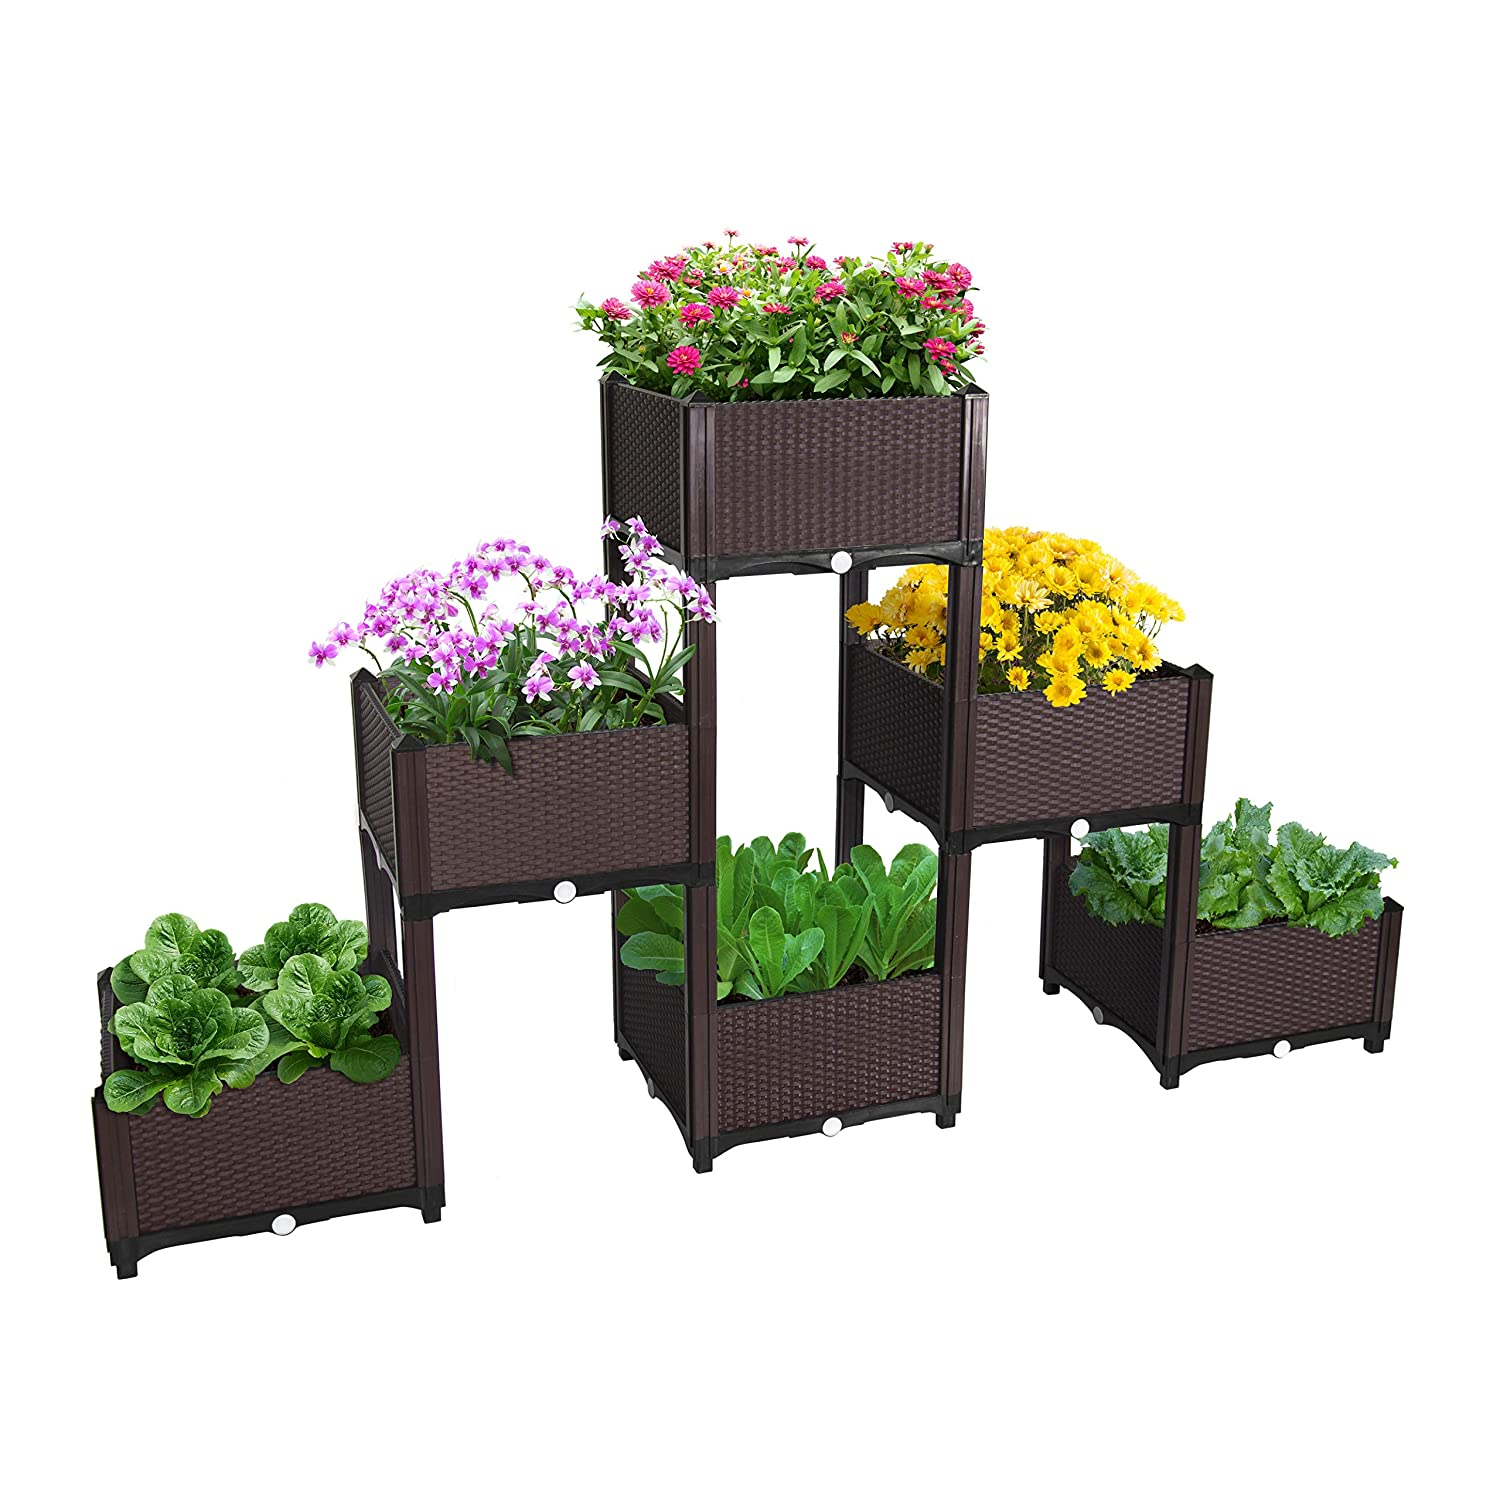 D'vine Dev Planter Raised Beds - Elevated Planter Garden Box for Vegetable/Flower/Herb Outdoor Standing Planter Beds